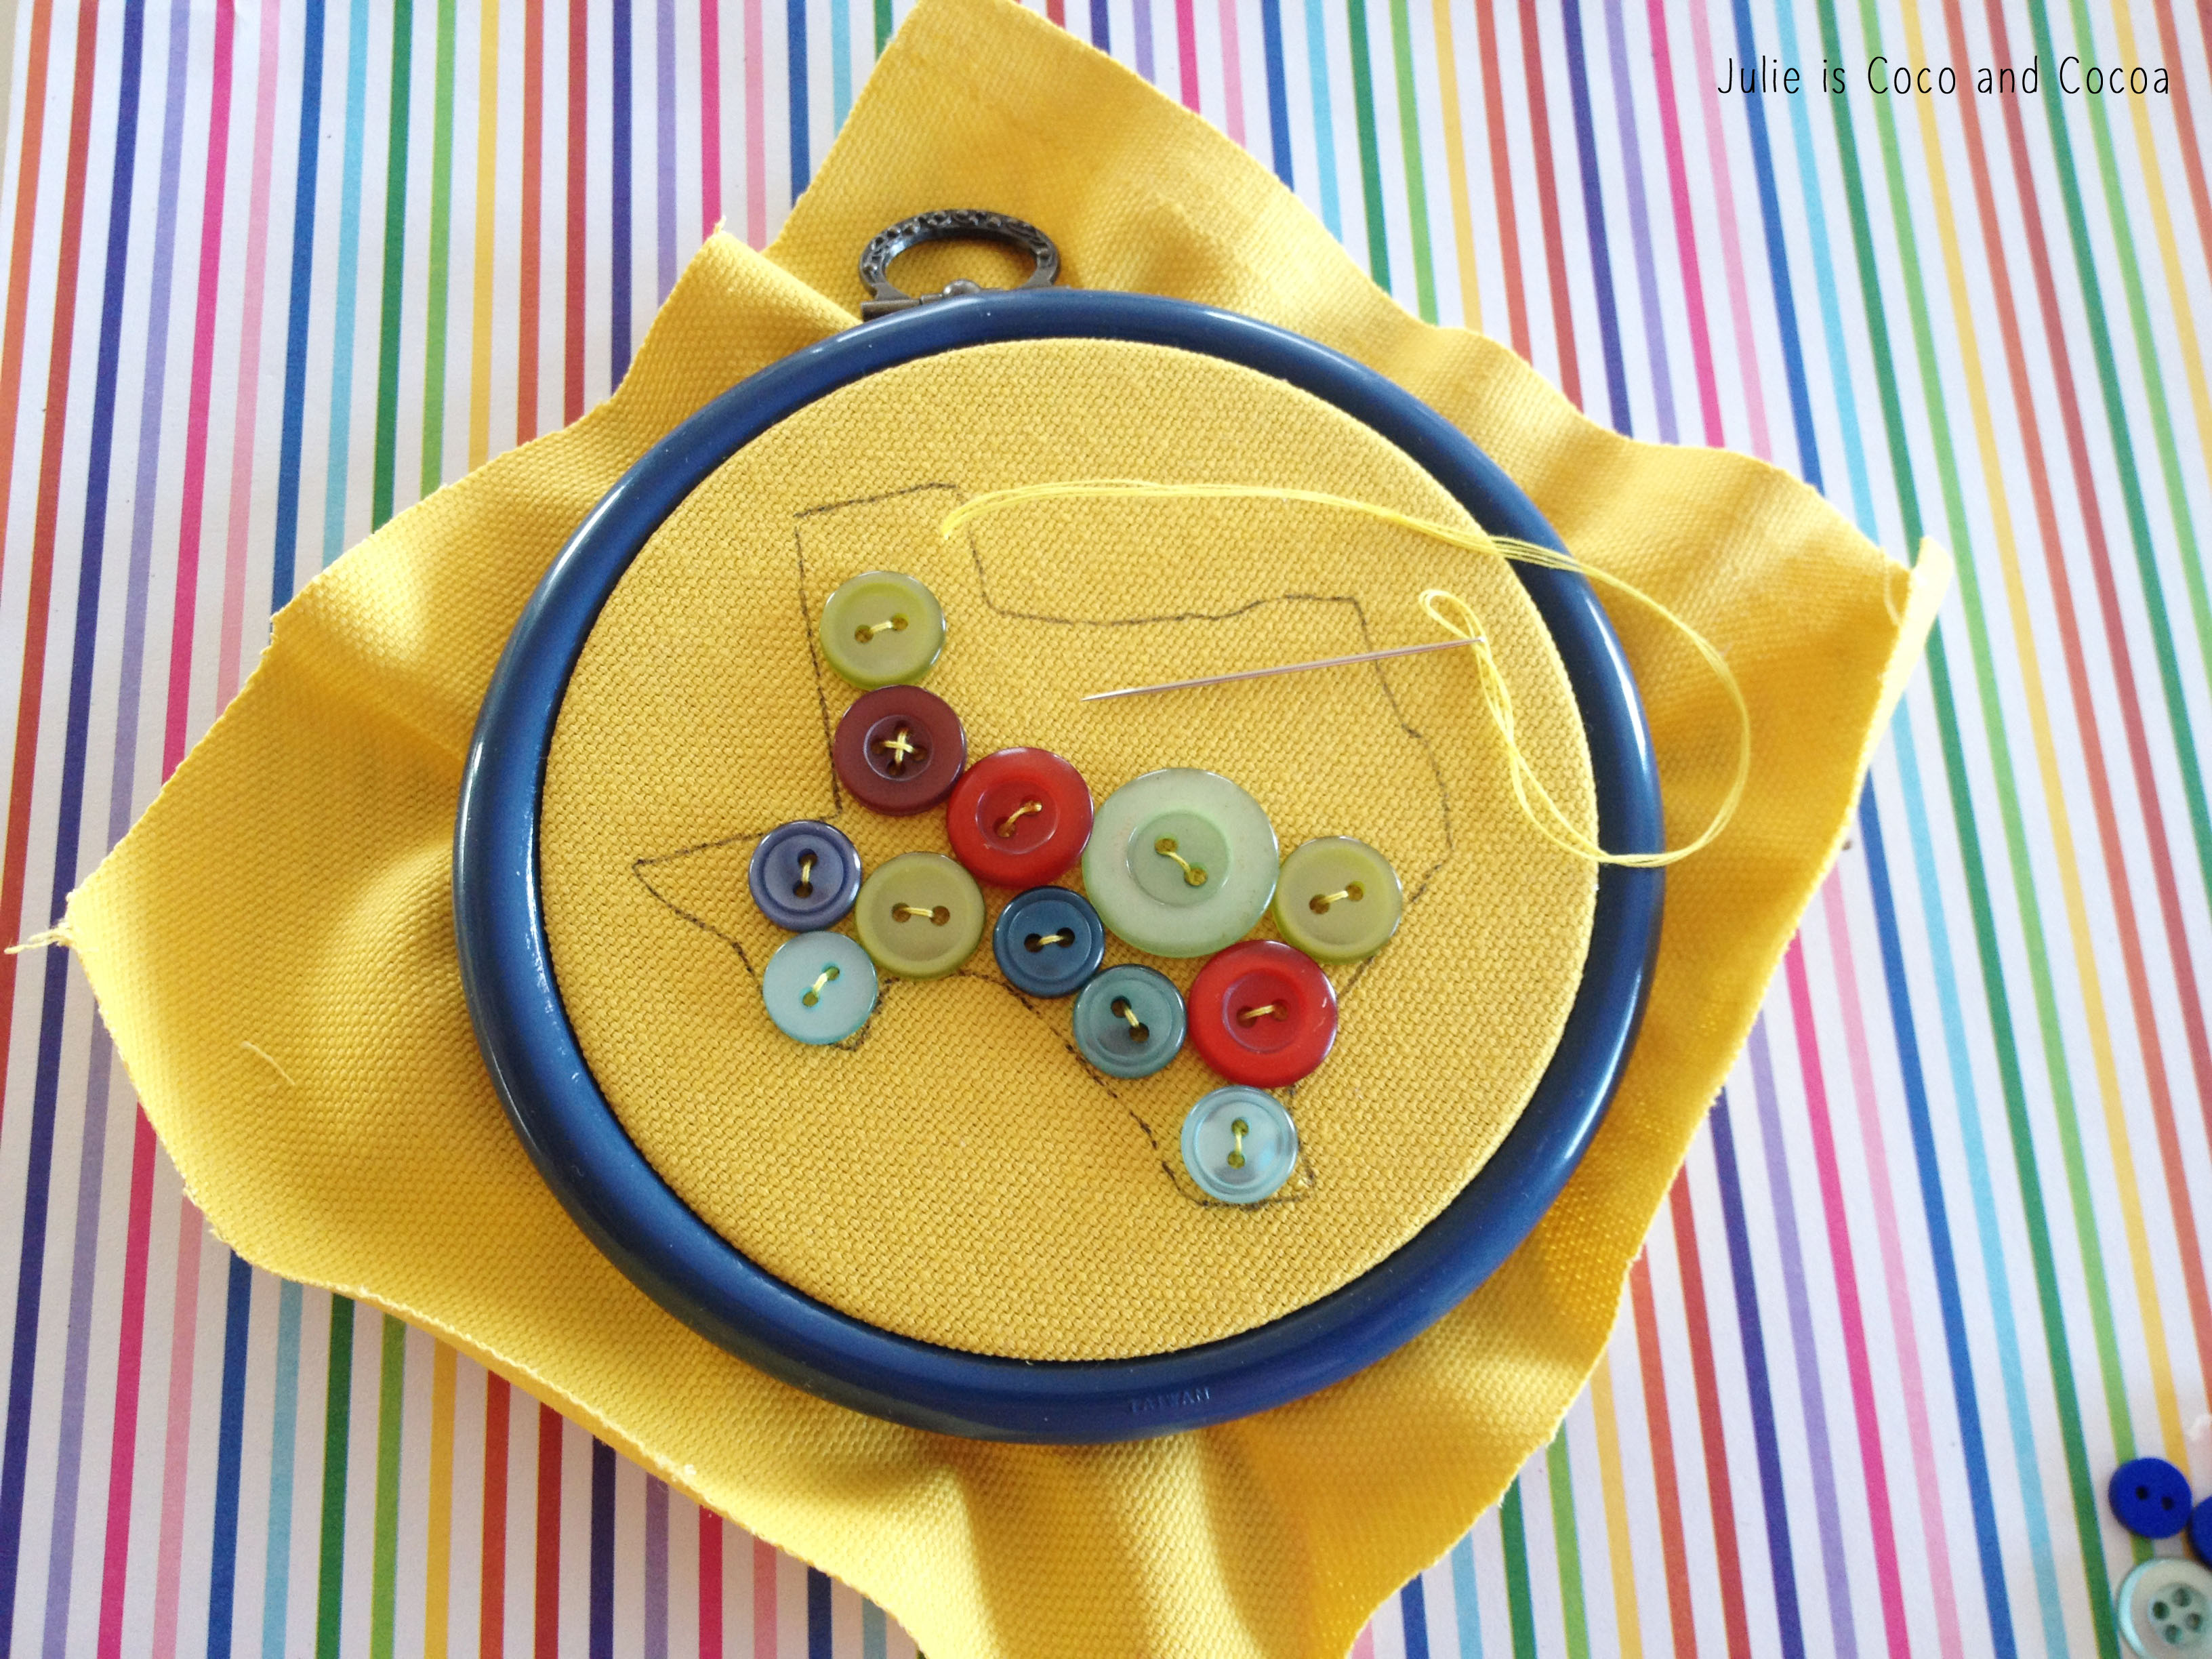 texas rainbow button embroidery stitching